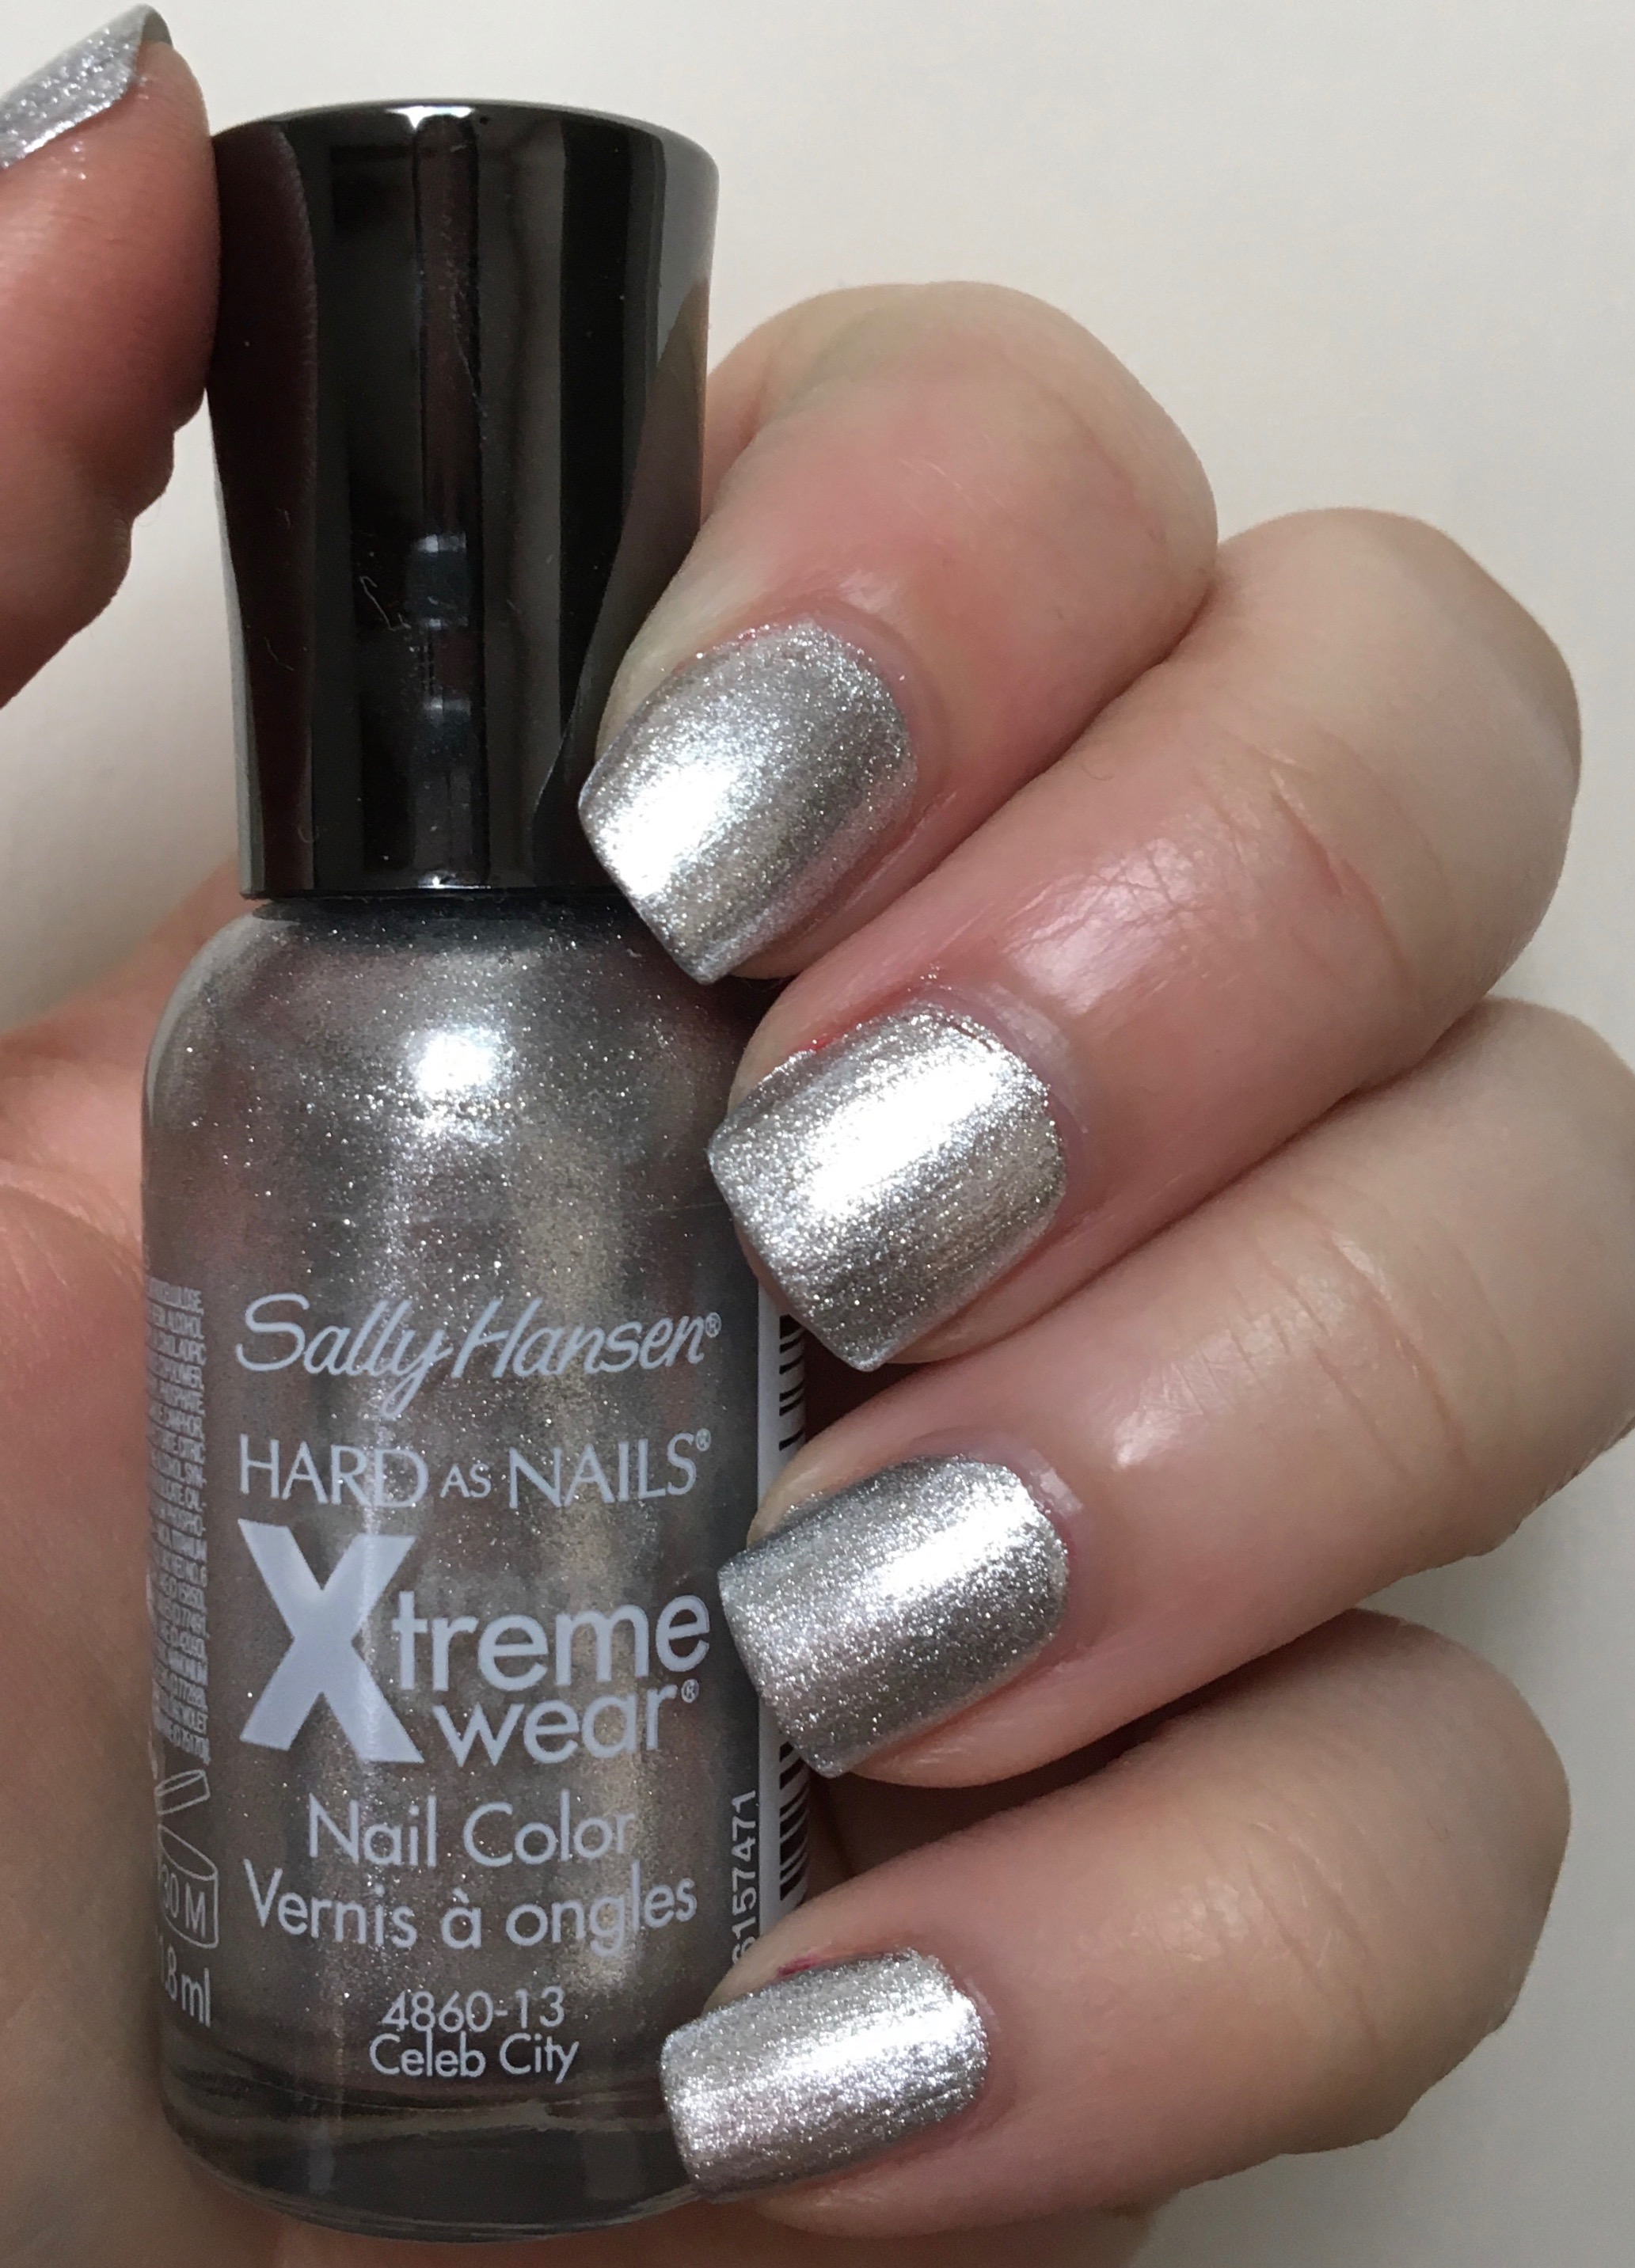 Dare to Compare | Sally Hansen Celeb City vs butter LONDON Diamond ...